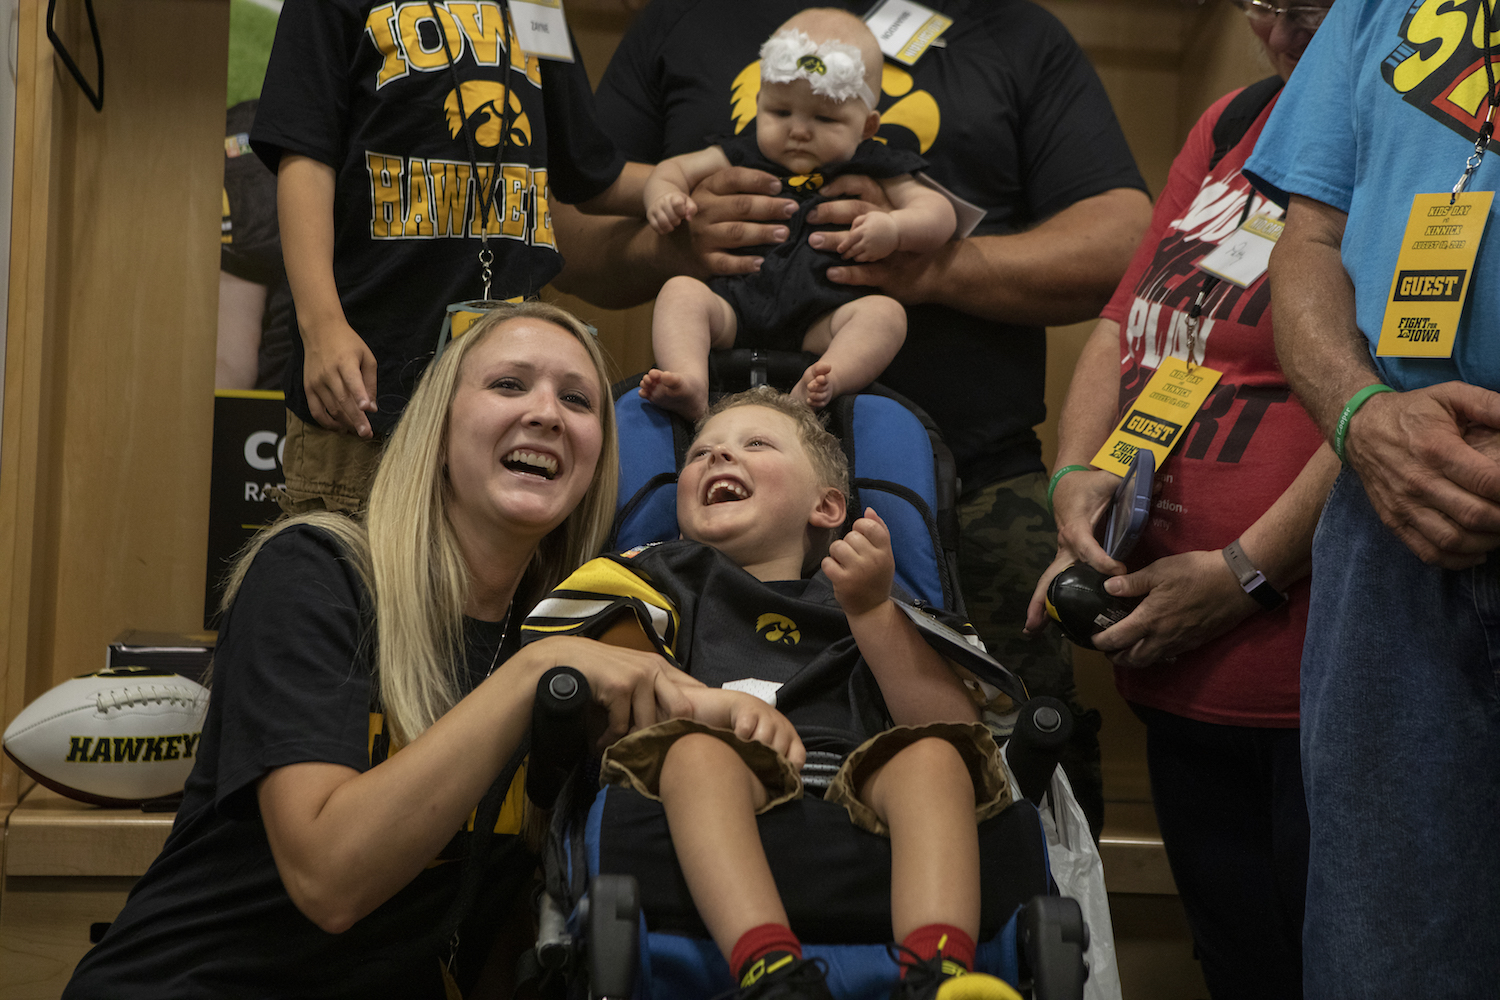 Kid Captain Cooper Leeman and his mother smile before the cameras in the Hawkeye football locker room at Kids Day at Kinnick on Saturday, August 10, 2019. Kids Day at Kinnick is an annual event for families to experience Iowa's football stadium, while watching preseason practice and honoring this year's Kid Captains.